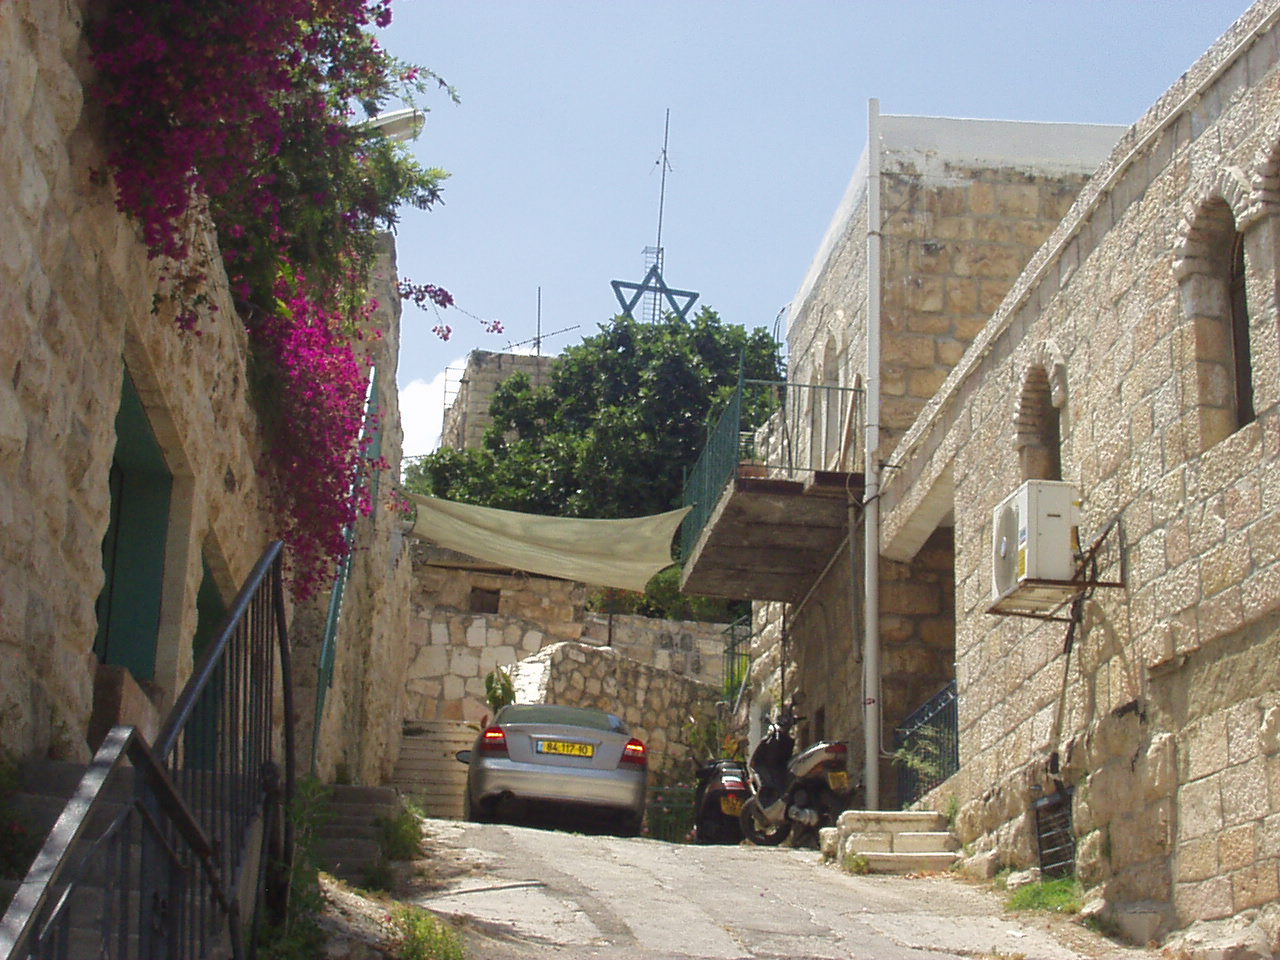 'Ayn Karim - عين كارم : An Ein Karim alley way in the OLD quarter #4, June 2002